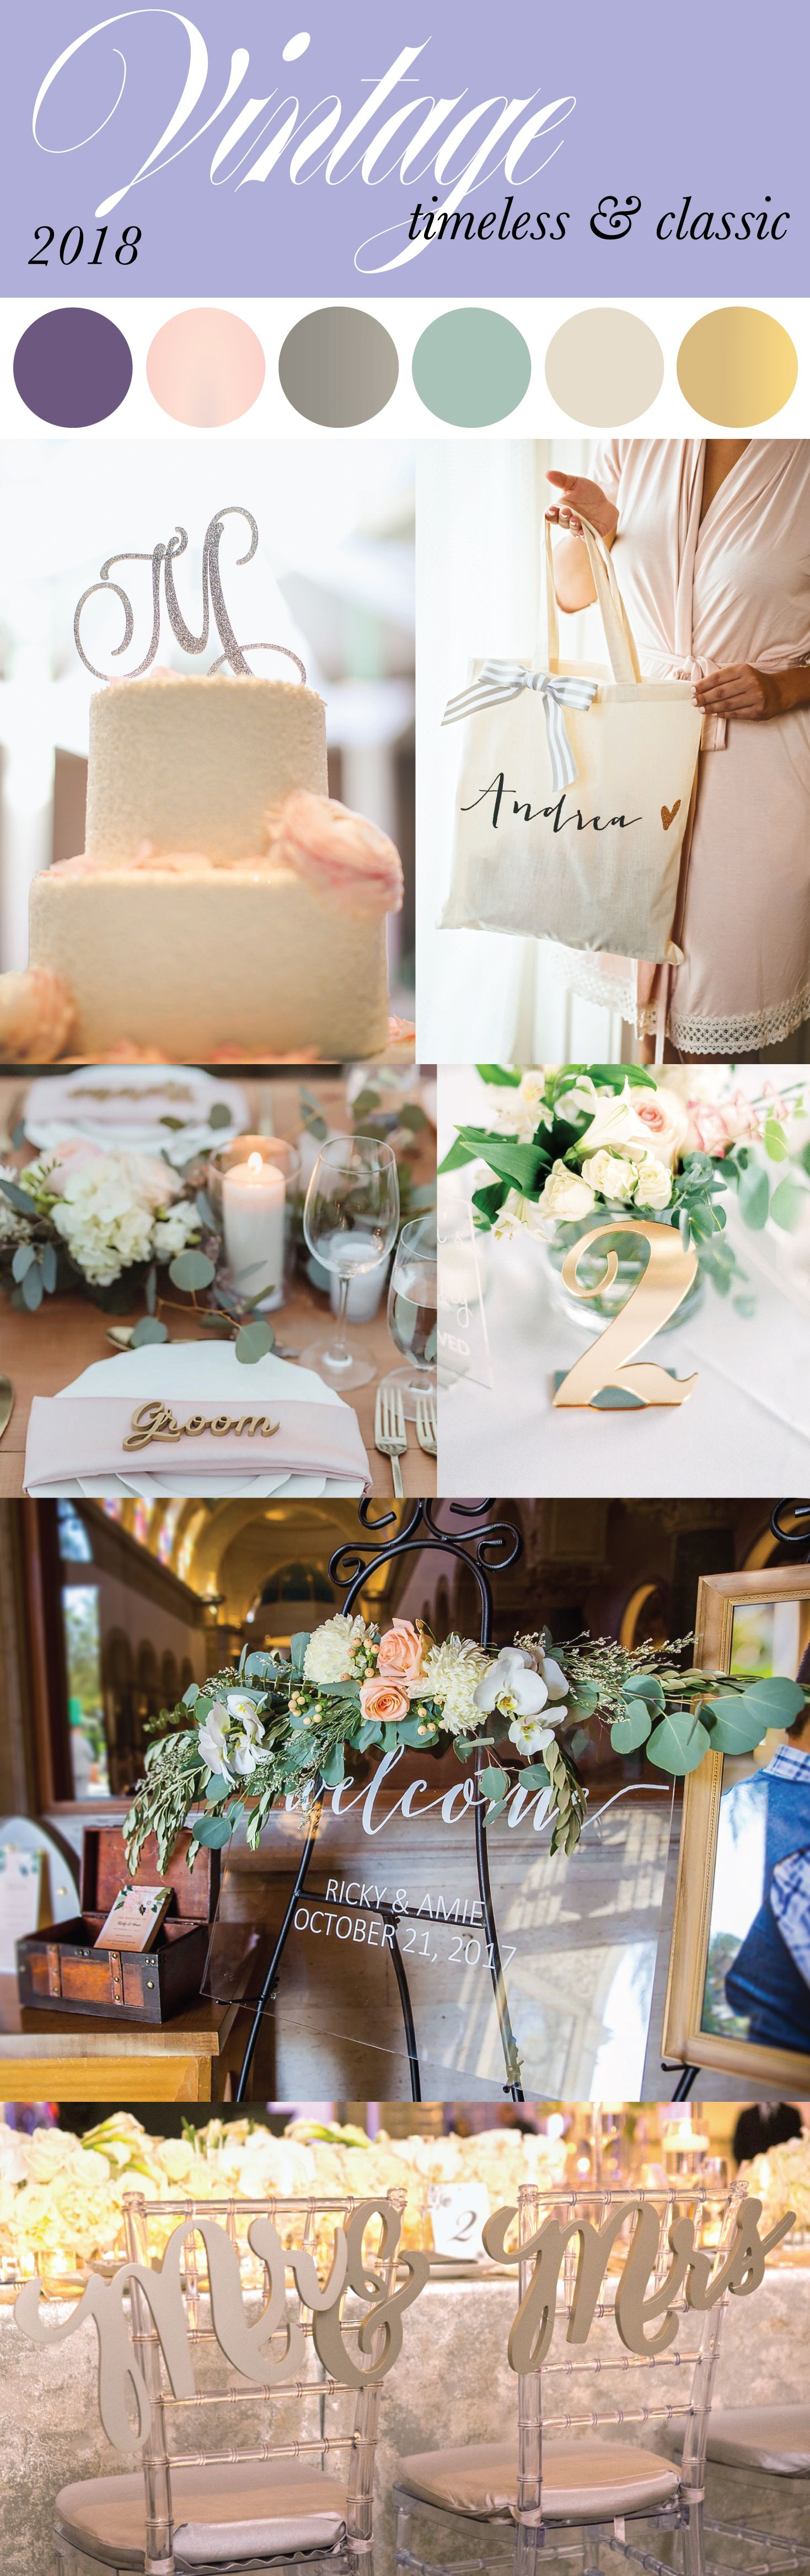 Wedding decorations reception october 2018 Modern Vintage Color Palette for  Weddings featuring Ultra